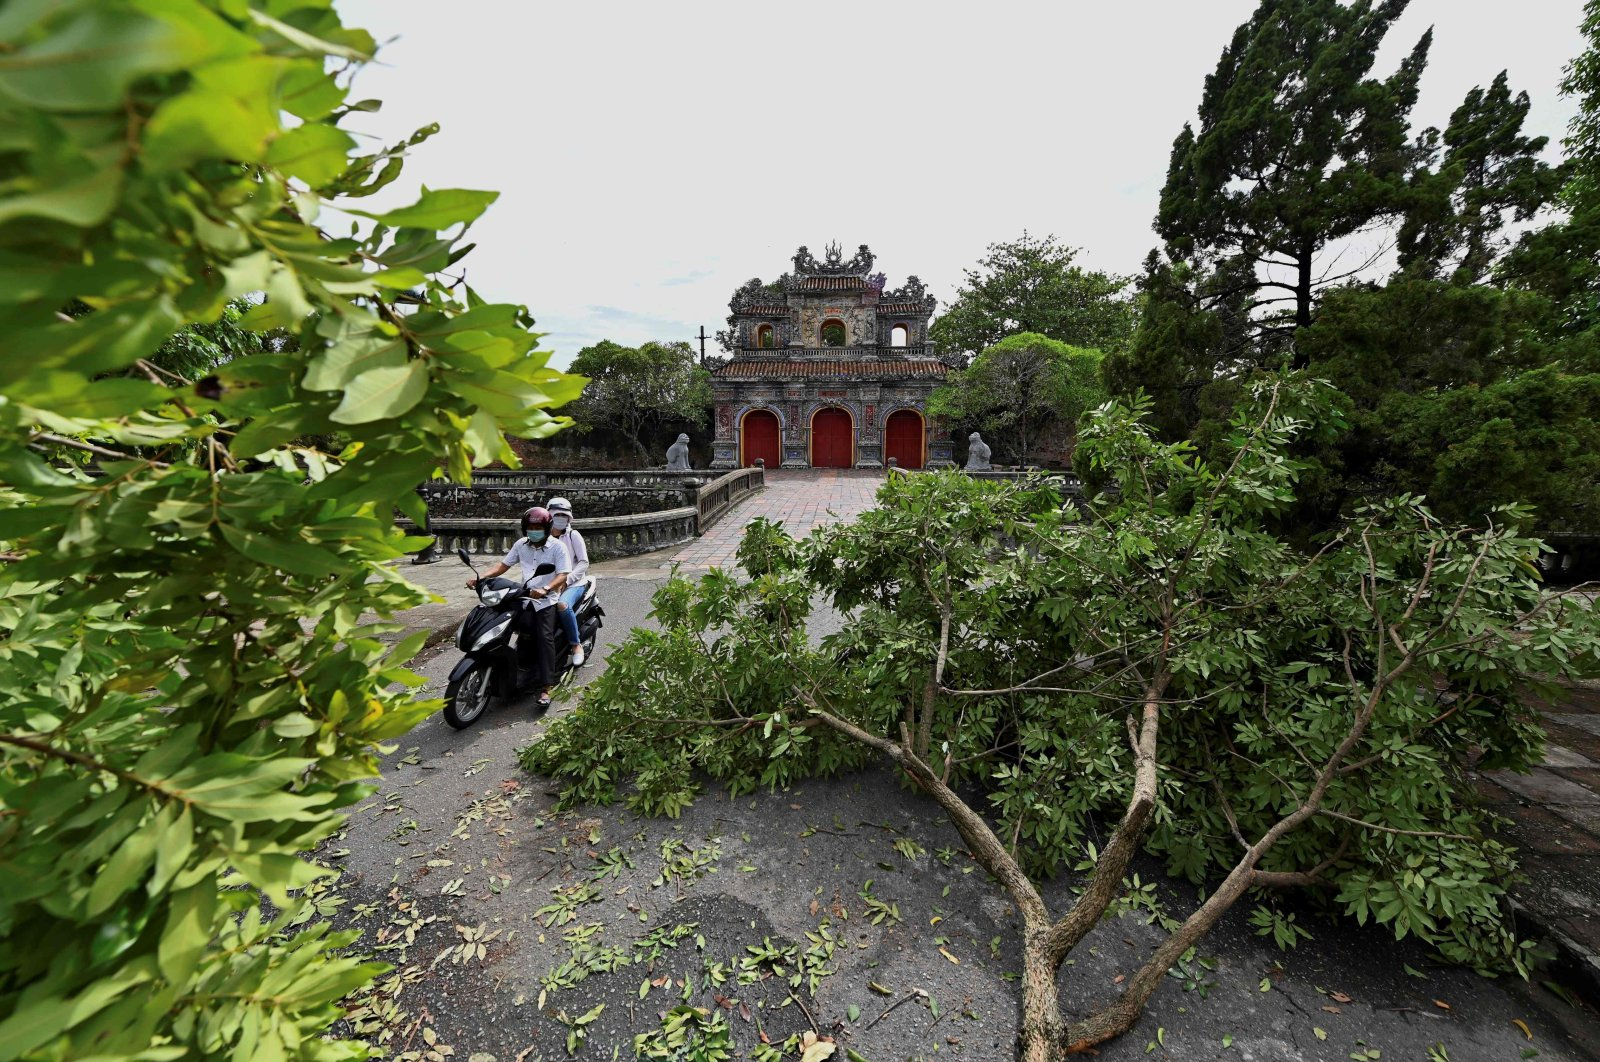 A motorist avoids a fallen tree branch due to tropical storm Noul in Hue city, as the storm hits central Vietnam, Sept. 18, 2020. (AFP Photo)